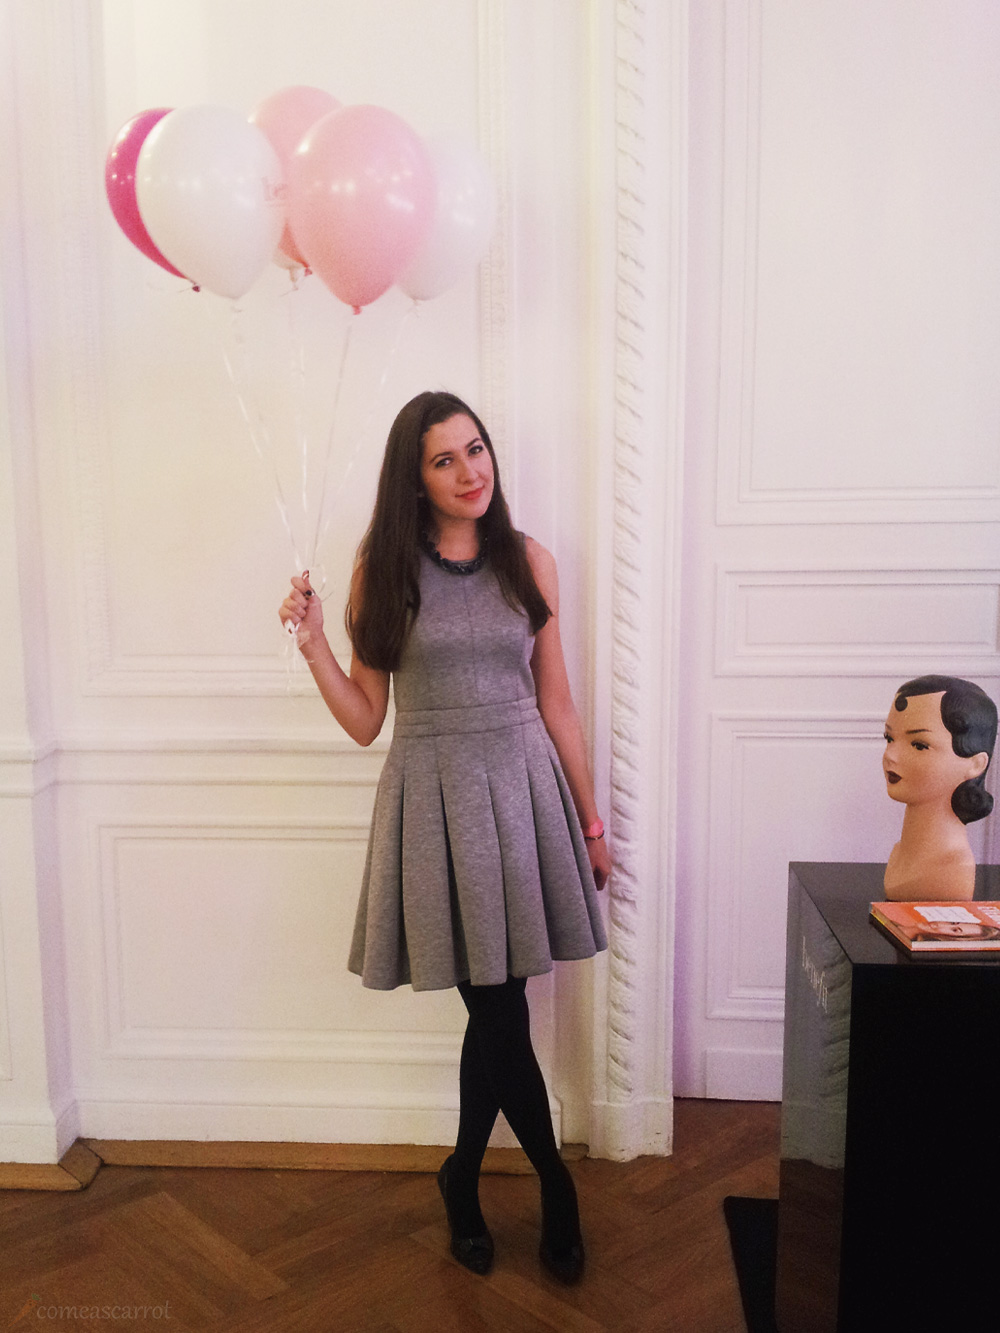 shoe step of the year 2014, award, event, blogger, benefit, ballons, clarks shoes, comptoir des cotonniers, outfit, dress, grey